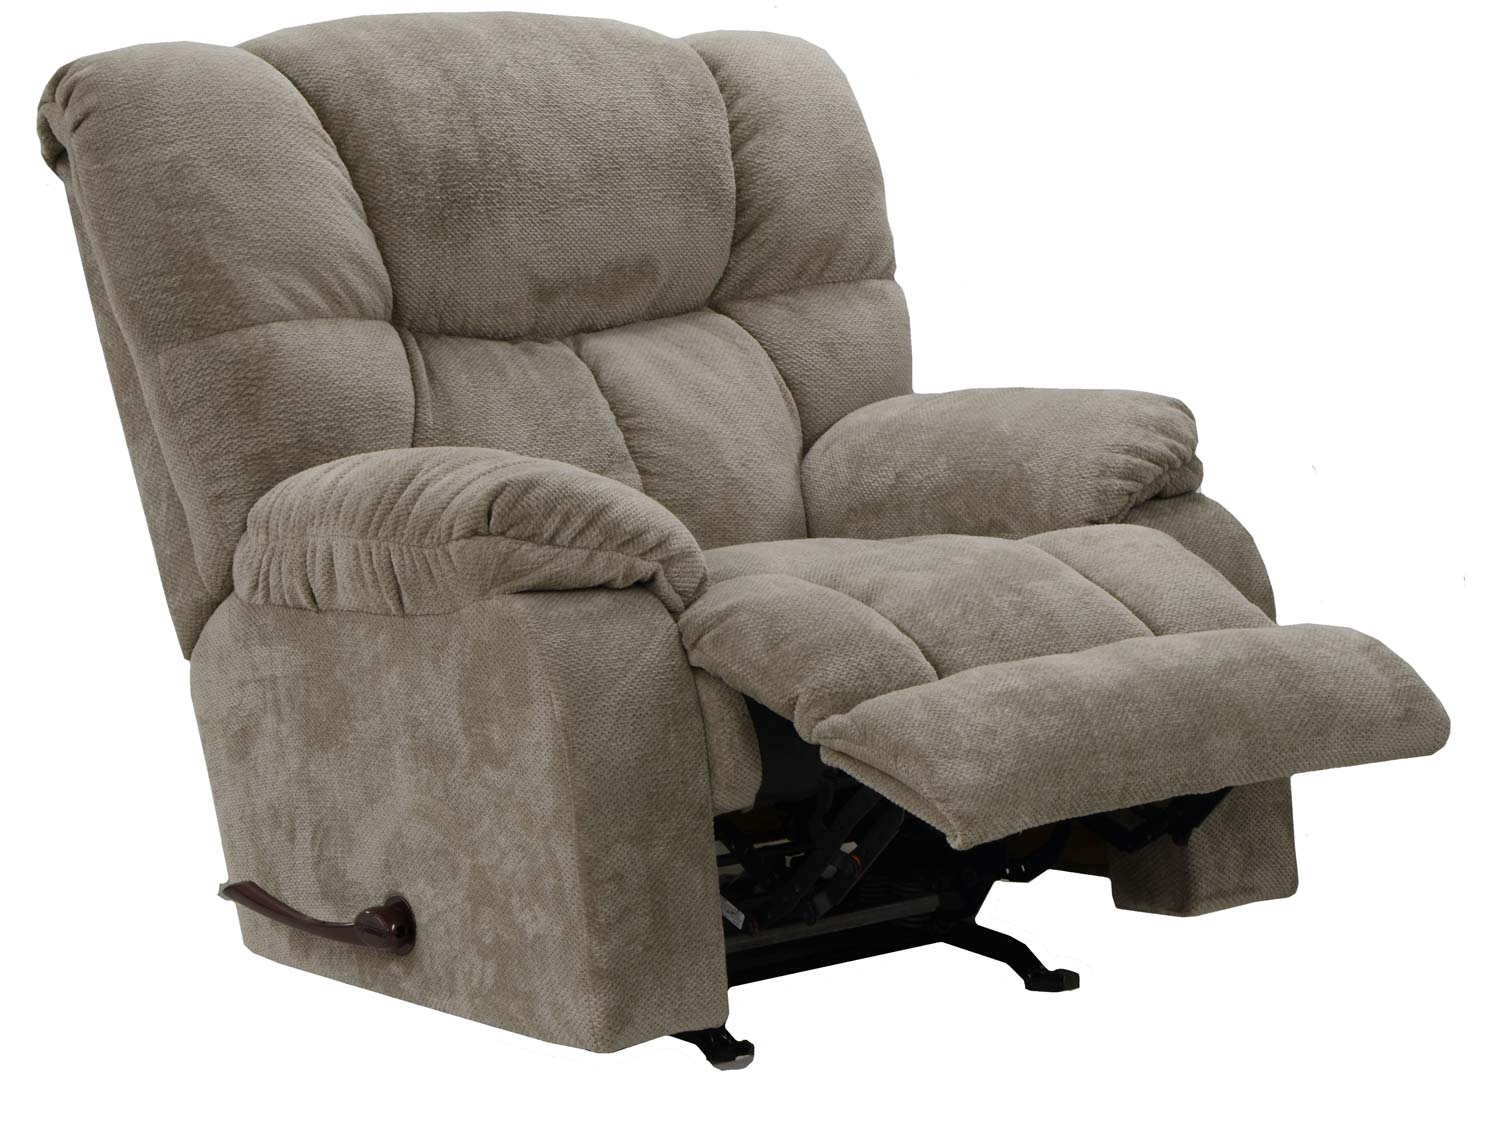 Catnapper popson x tra comfort chaise rocker recliner for Catnapper chaise recliner